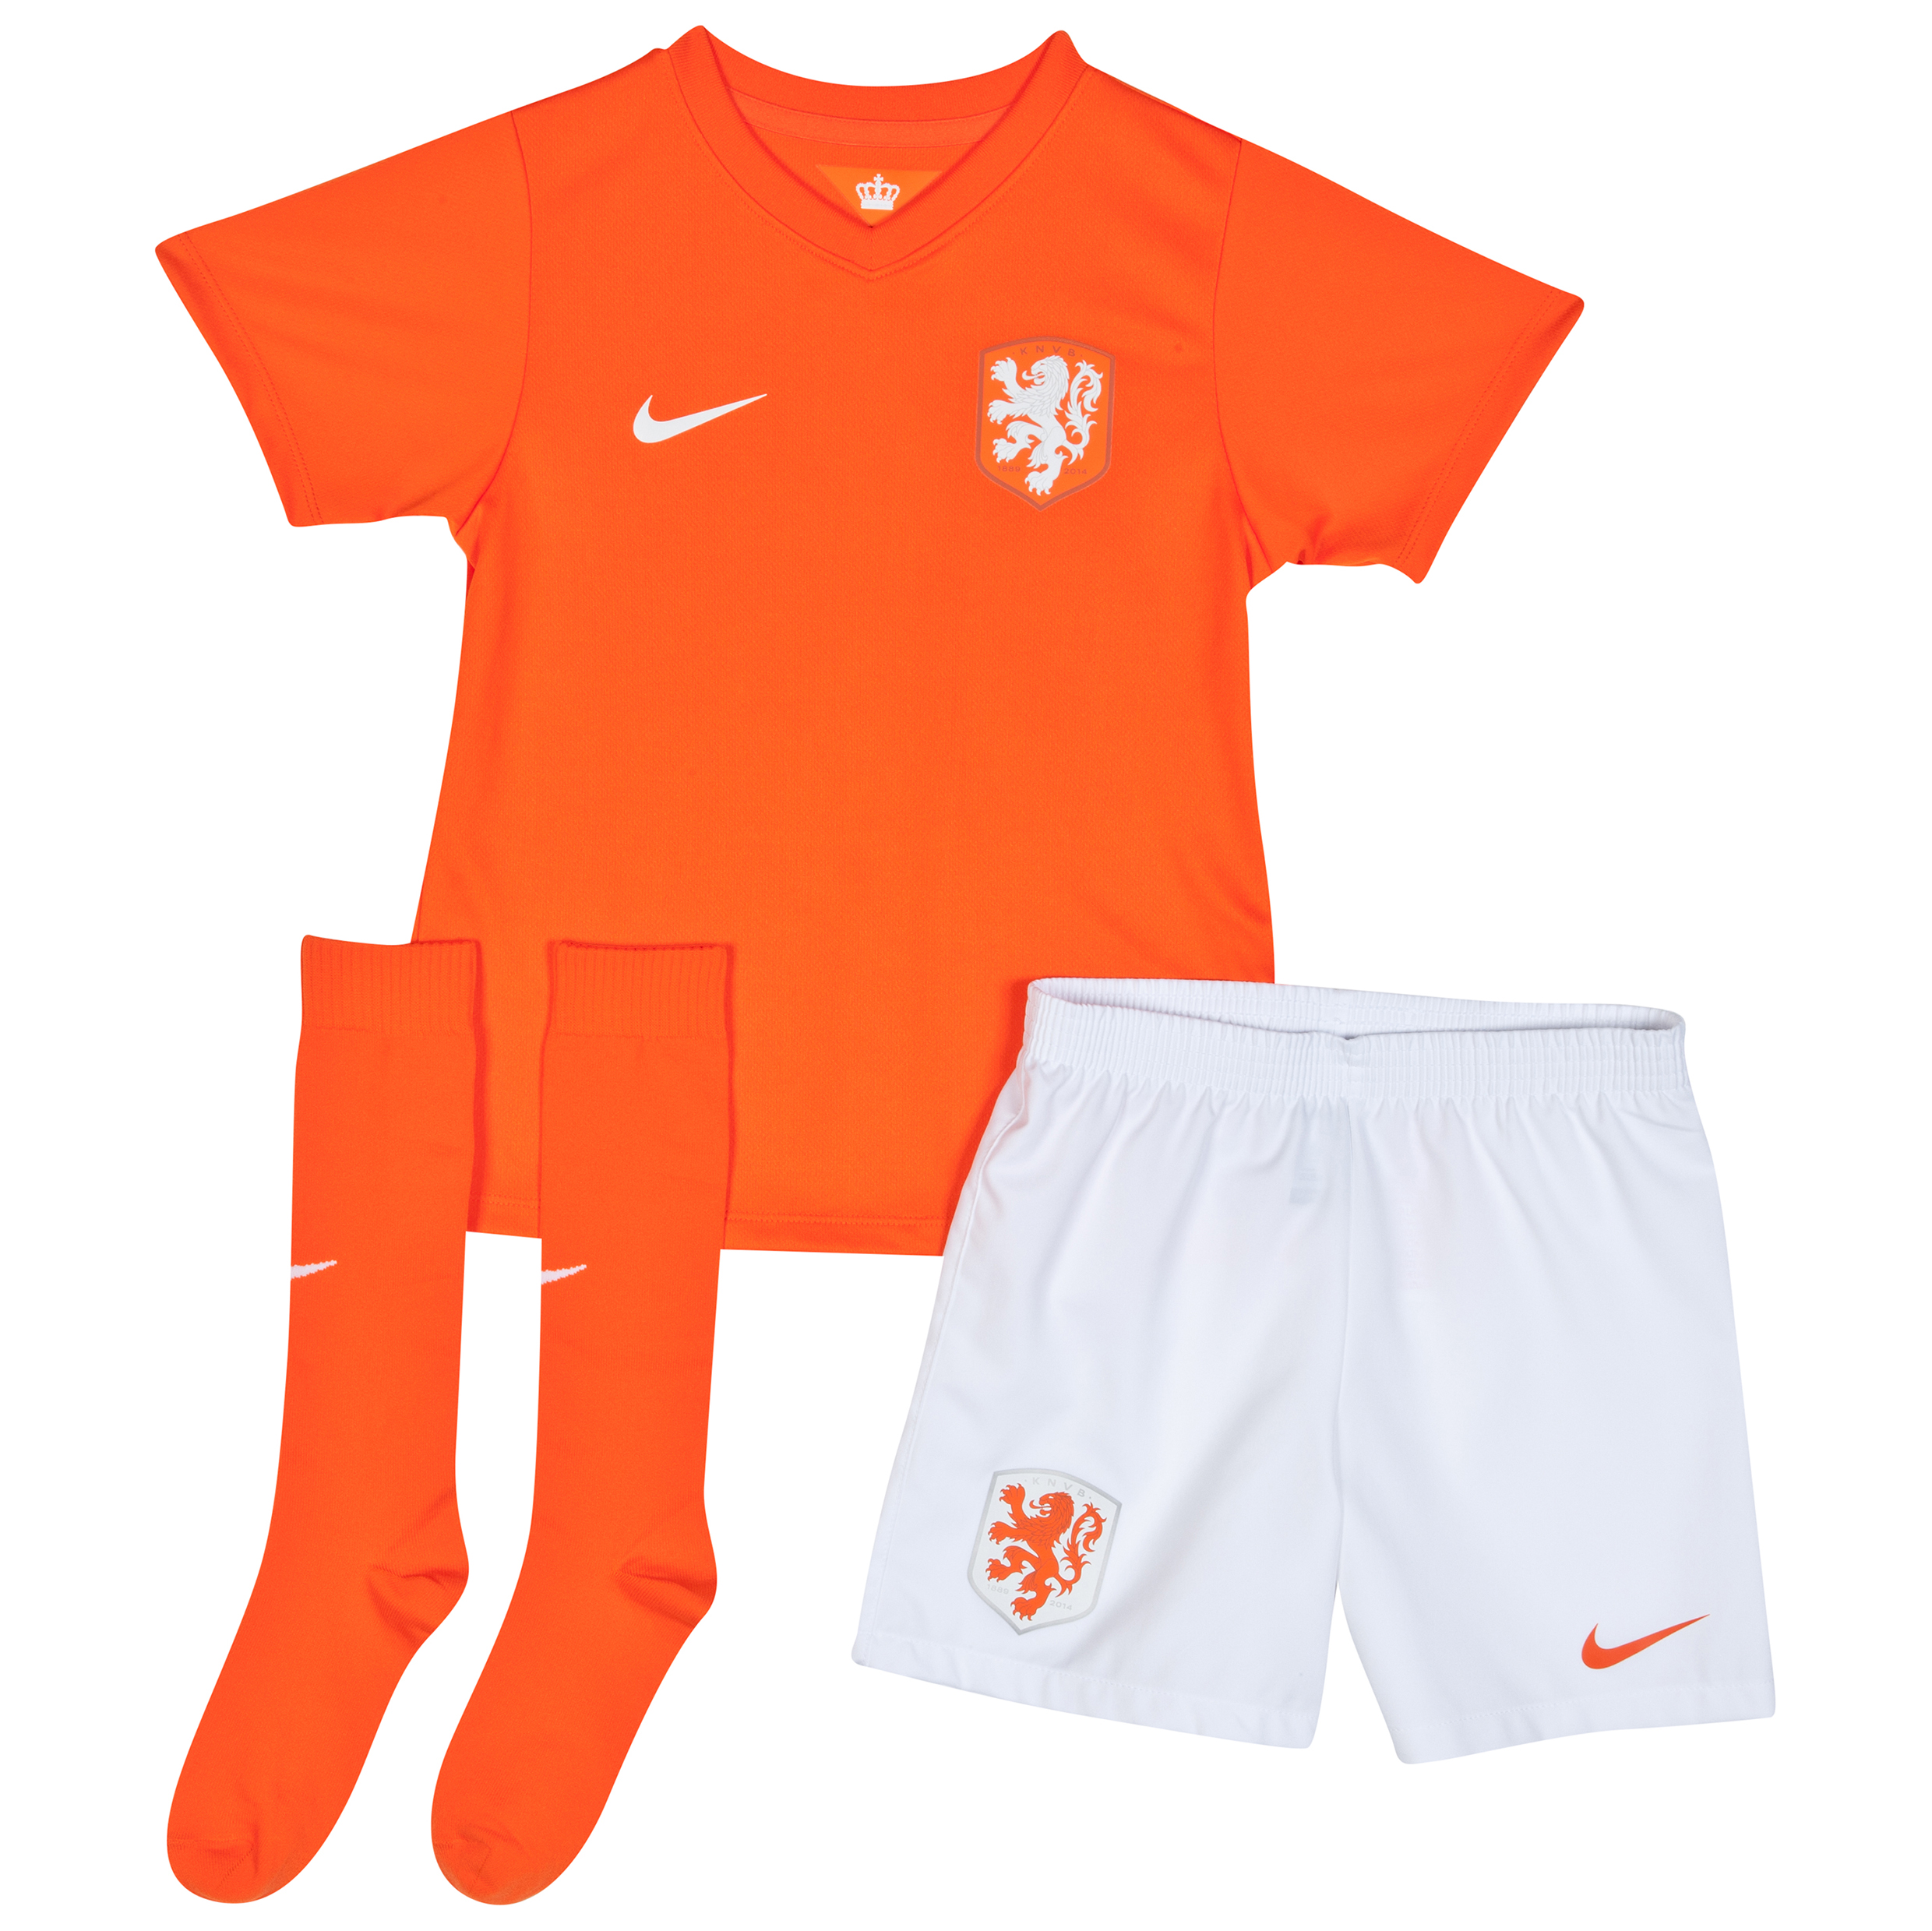 Netherlands Home Kit 2014/15 - Little Boys Orange